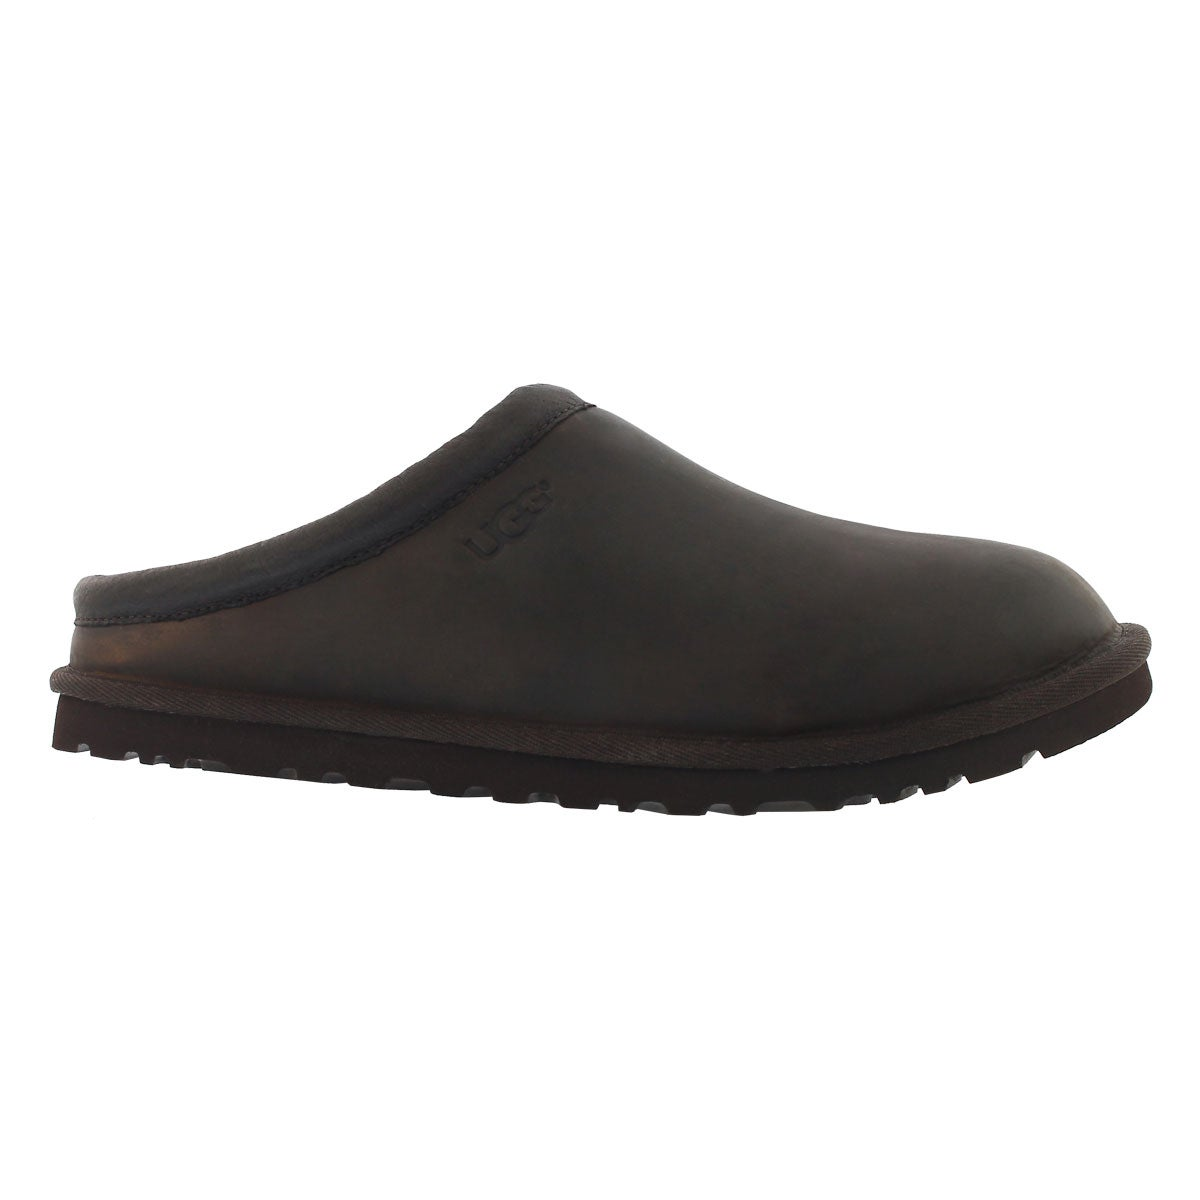 Men's CLASSIC stout casual clogs